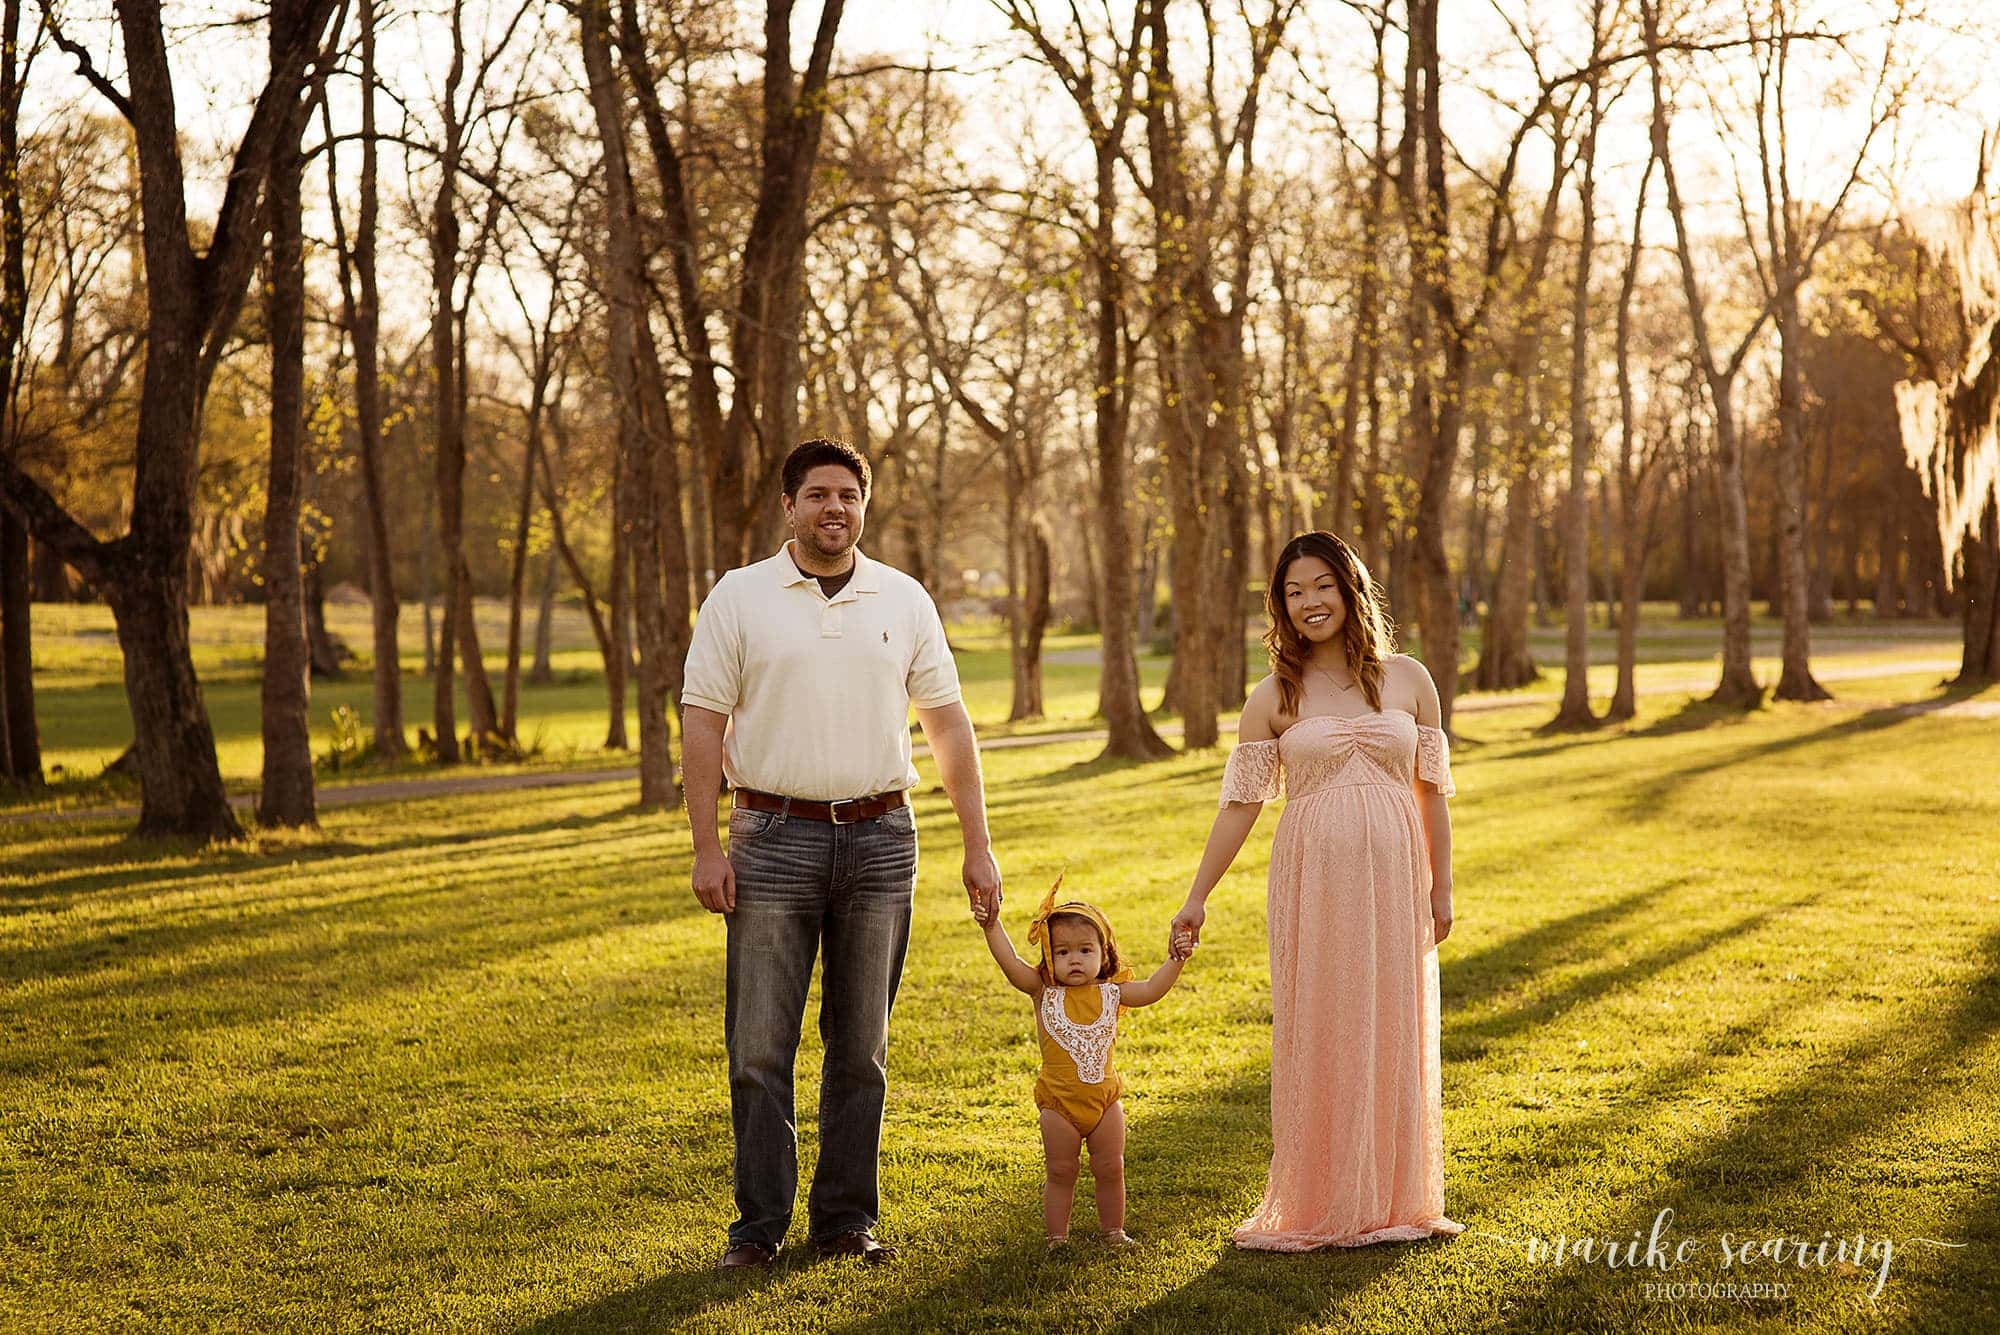 Baton Rouge maternity newborn photographer mariko searing photography maternity pregnant woman holding hands with daughter and husband in the park